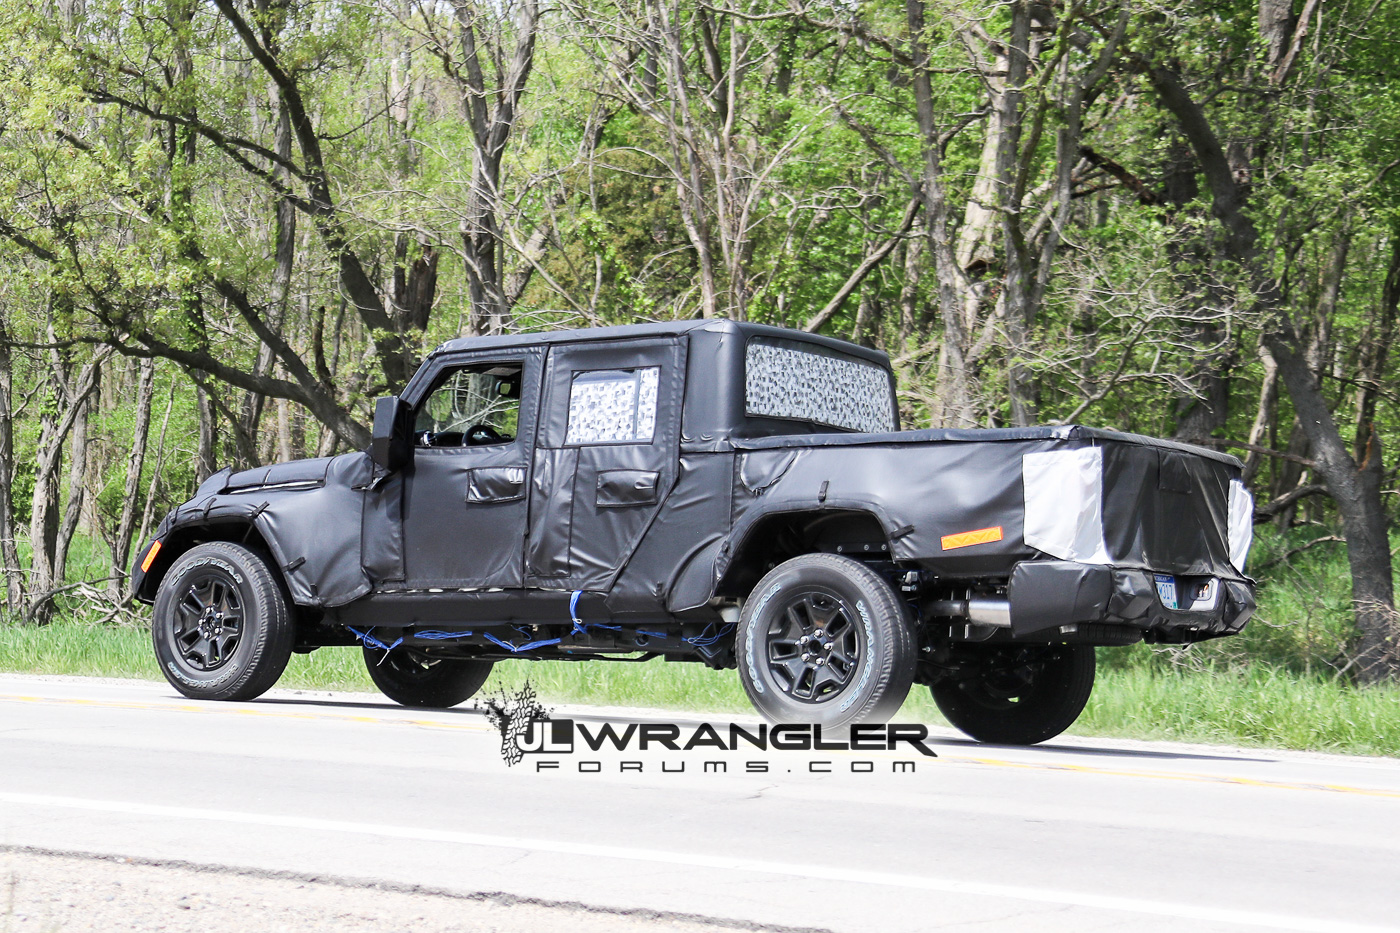 Jeep Rubicon 2017 >> JT Wrangler Truck Testing on Public Roads, Shows Spare Tire Mount | 2018+ Jeep Wrangler Forums ...